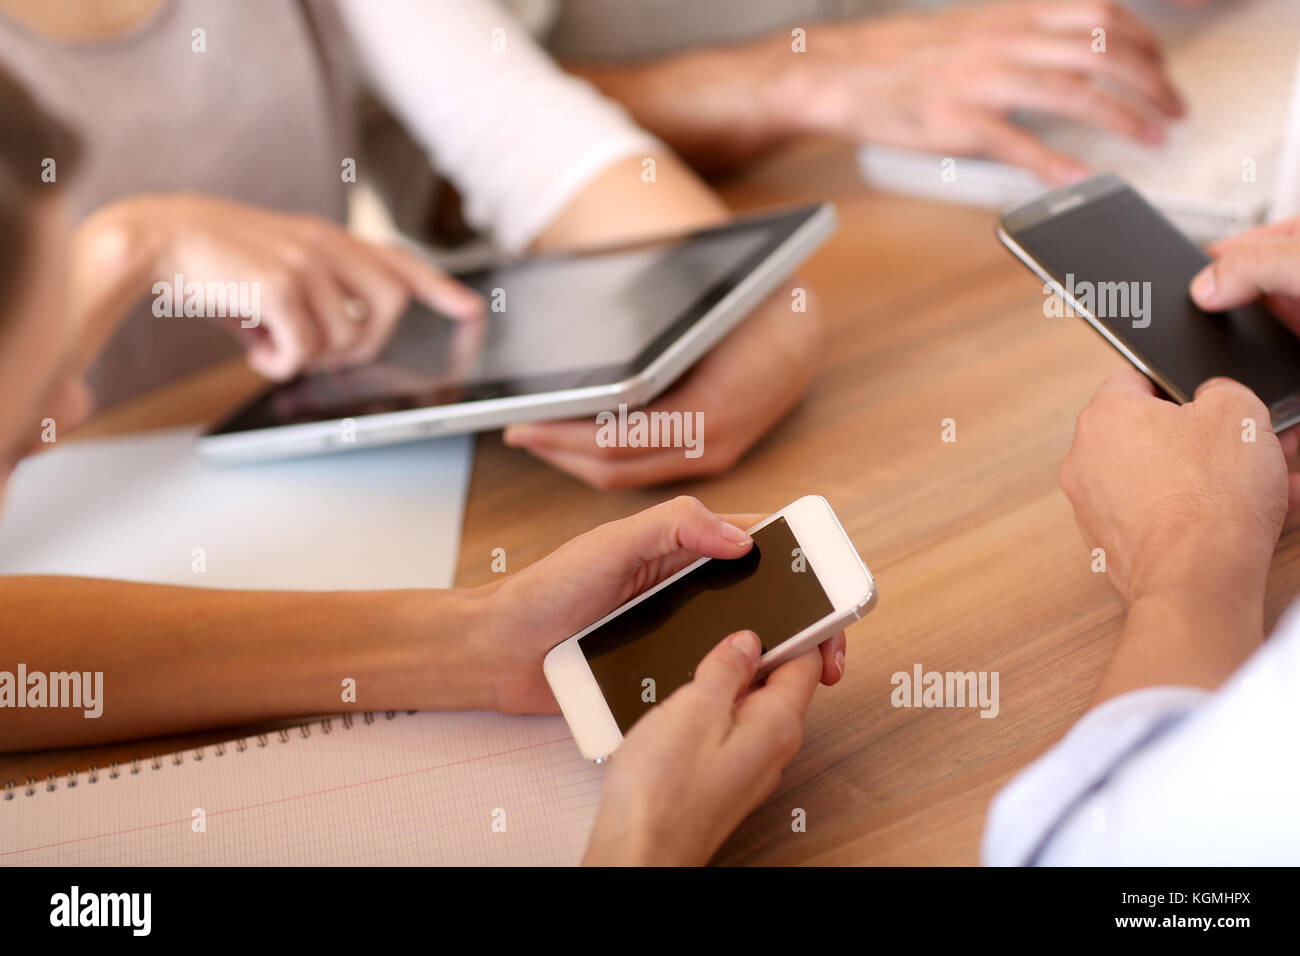 Group of business people using electronic devices at work - Stock Image